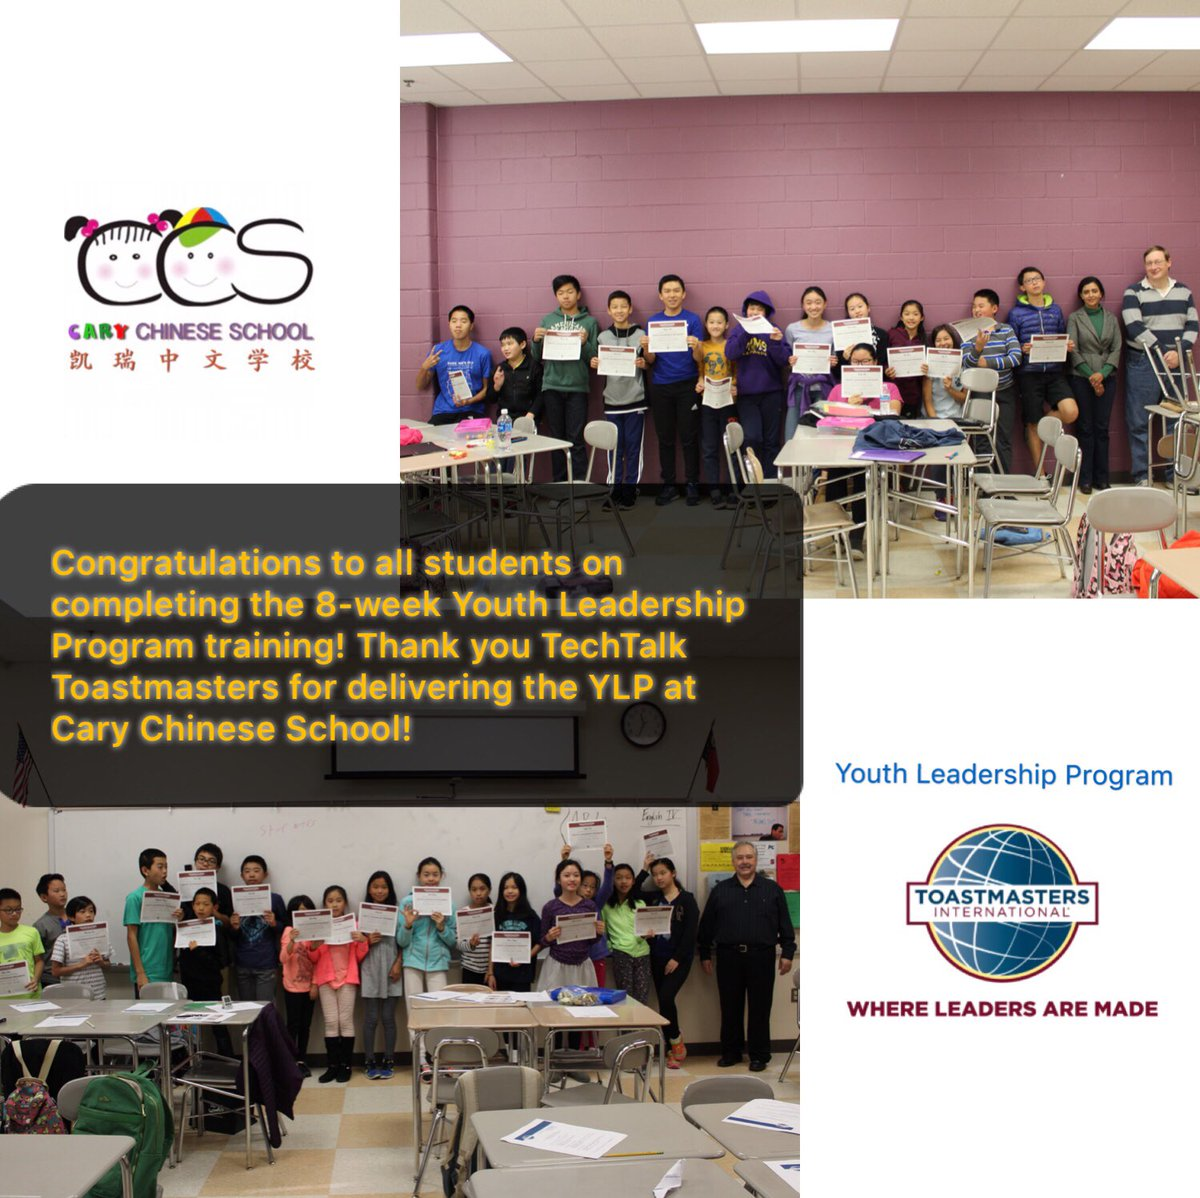 Congratulations to all students on completing the 8-week Youth Leadership Program training! Thank you @ToastmastersD37 TechTalk Toastmasters for delivering the YLP at Cary Chinese School! #Toastmasters #WhereLeadersAreMade <br>http://pic.twitter.com/I0ymqGcY4s